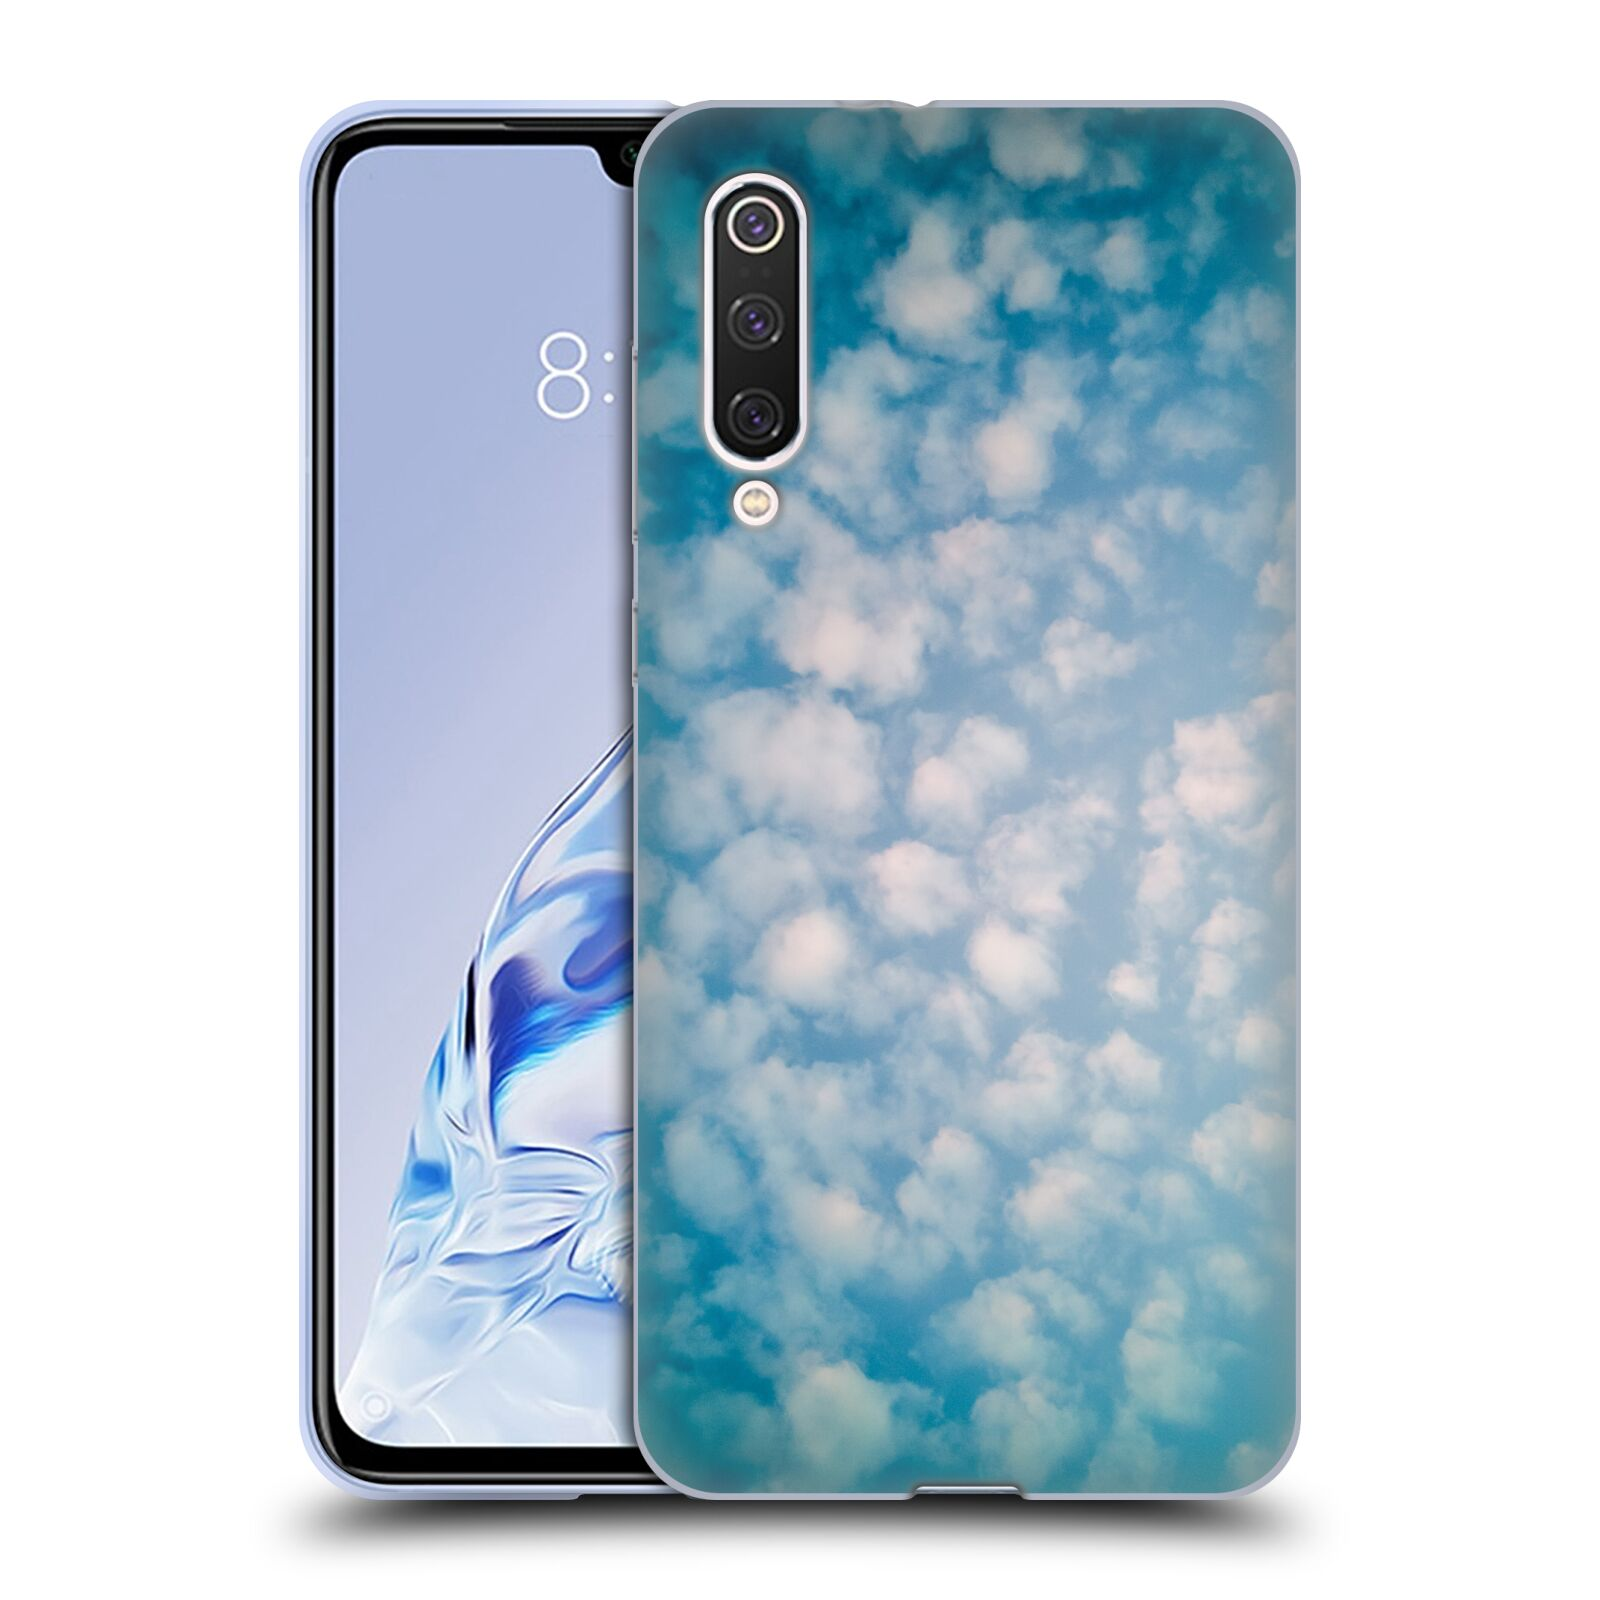 Official PLdesign Clouds Altocumulus Gel Case for Xiaomi Mi 9 Pro / 5G